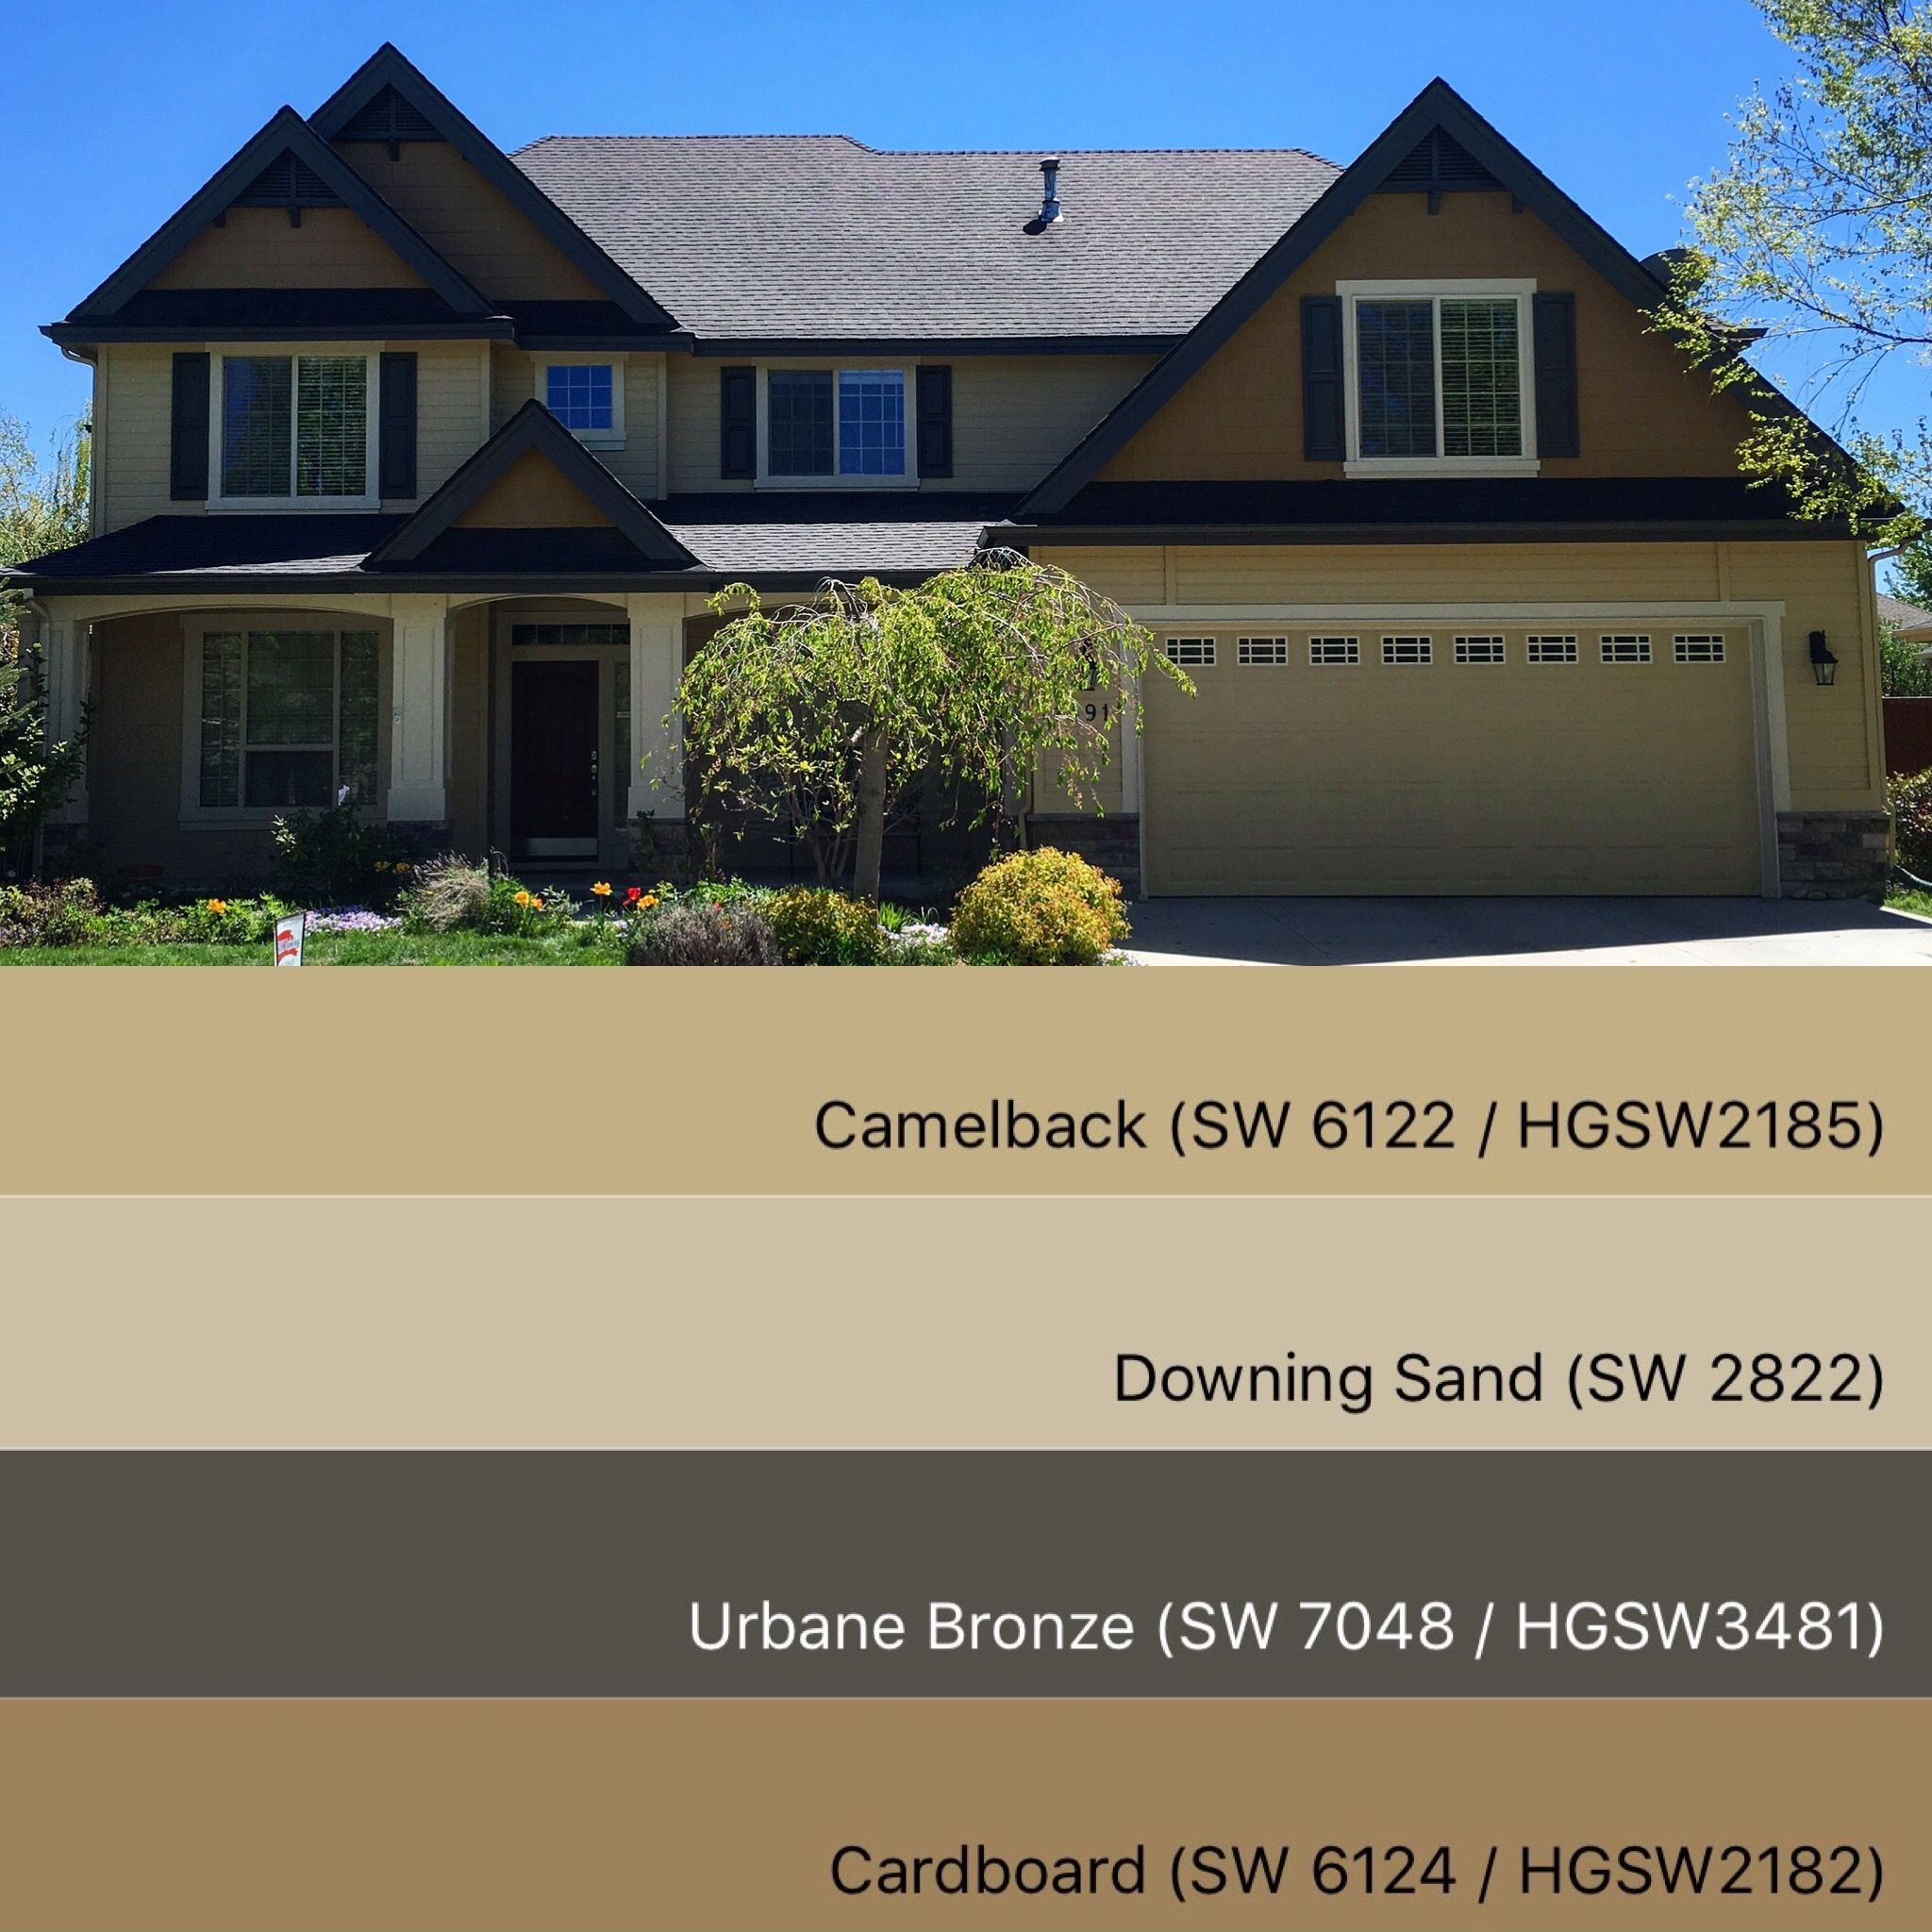 Taupe Exterior House Color Ideas: Sherwin Williams Paint Colors: Camelback 3481, Downing